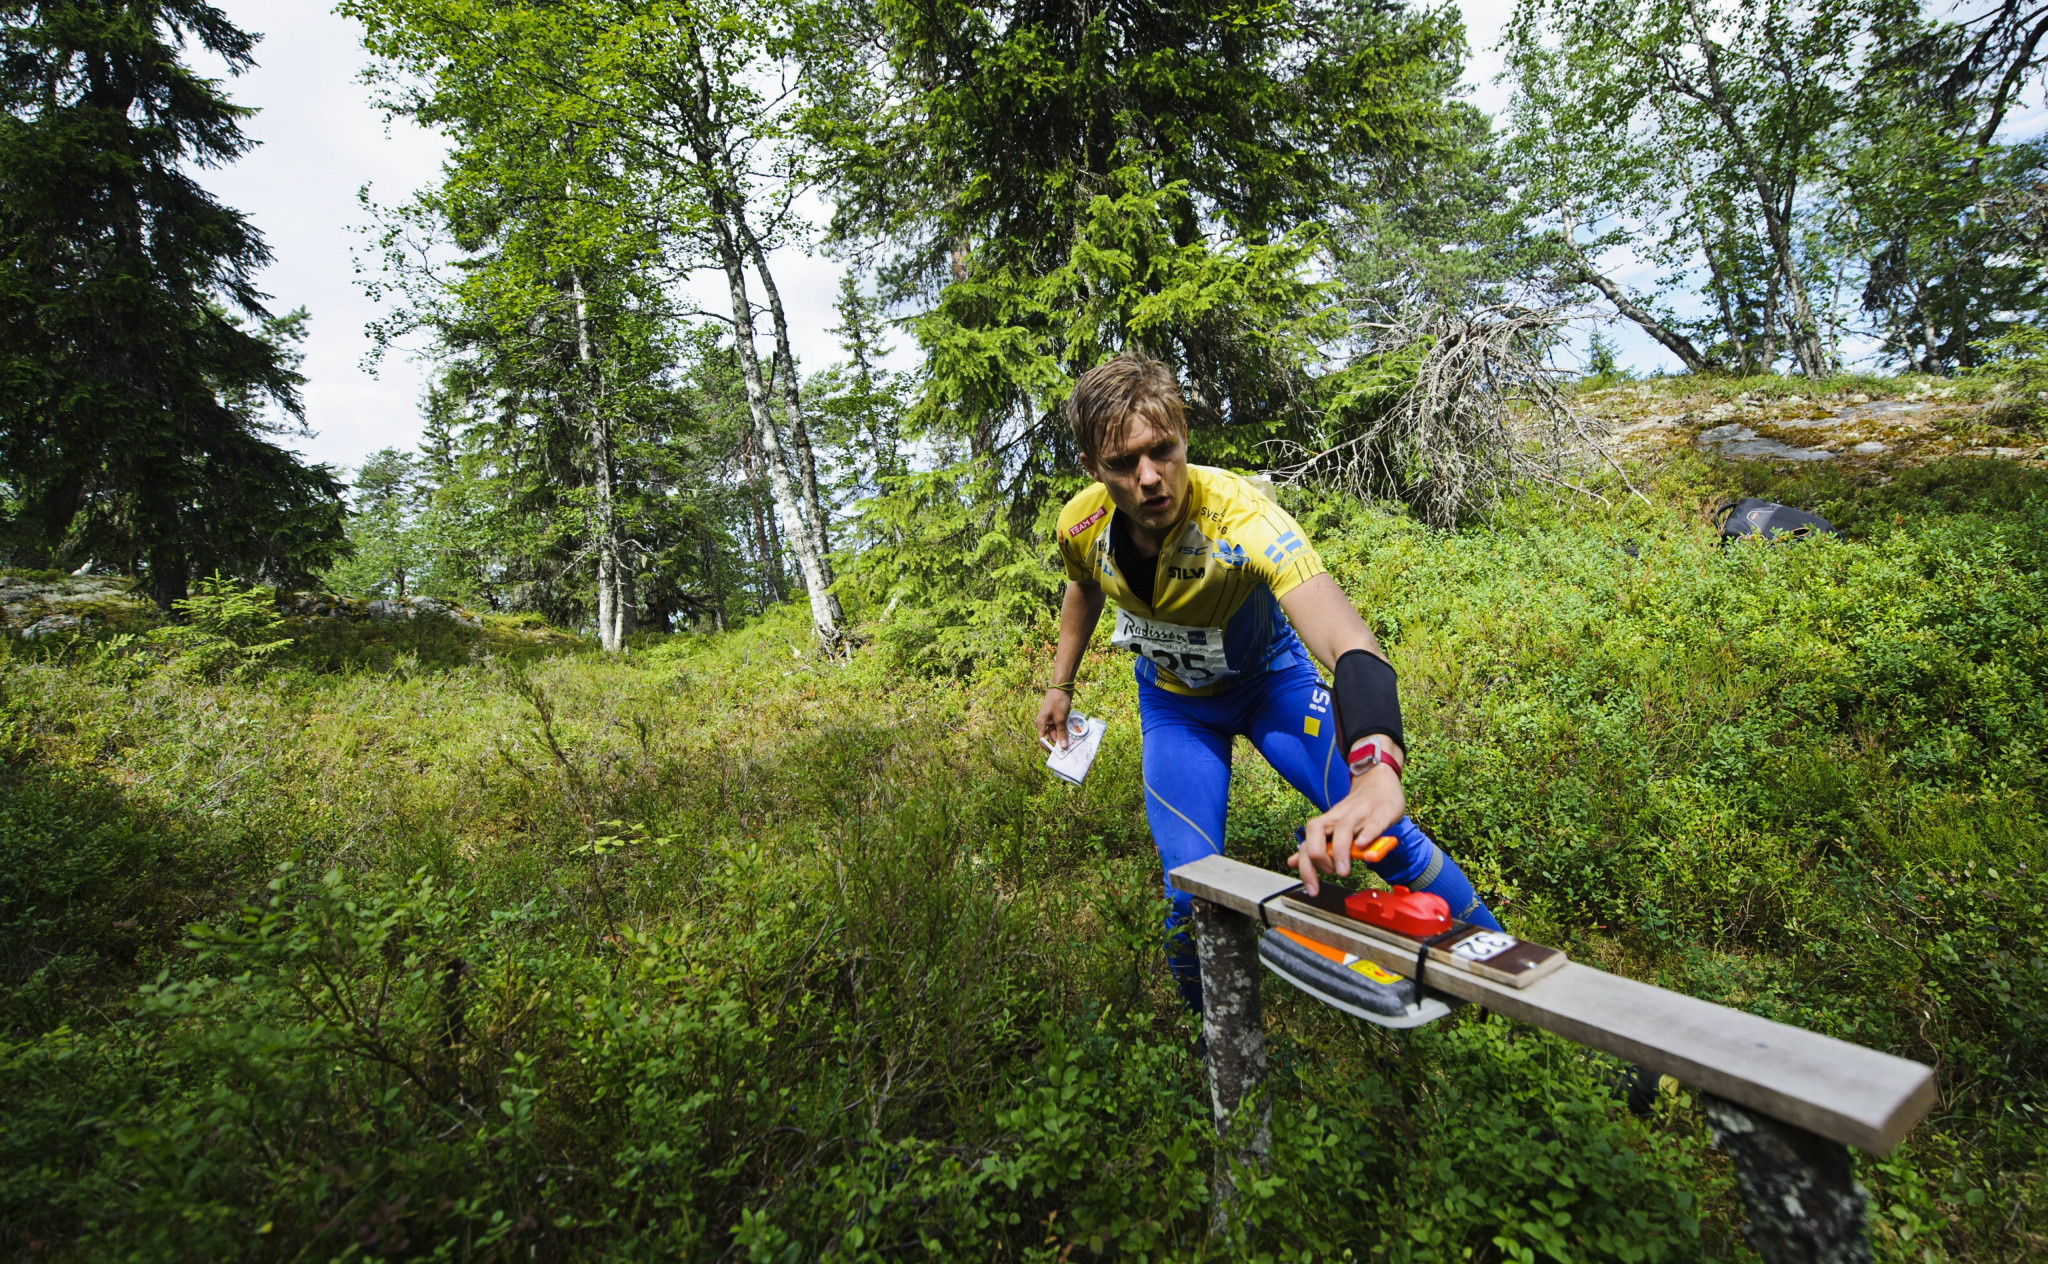 Training activities for 2021 World Orienteering Championships frozen due to COVID-19 travel restrictions